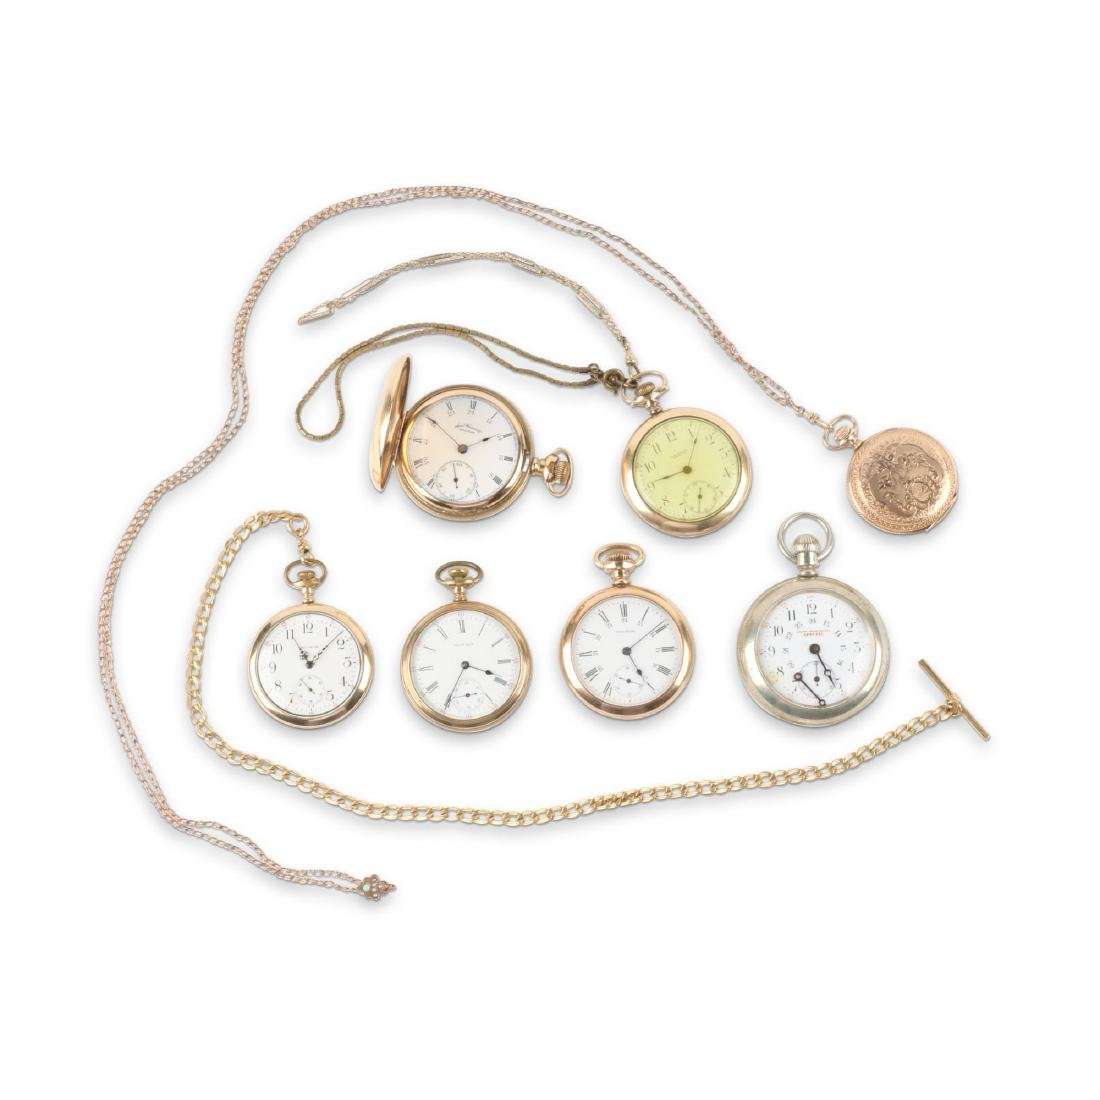 Waltham, Regina, Pocket Watches